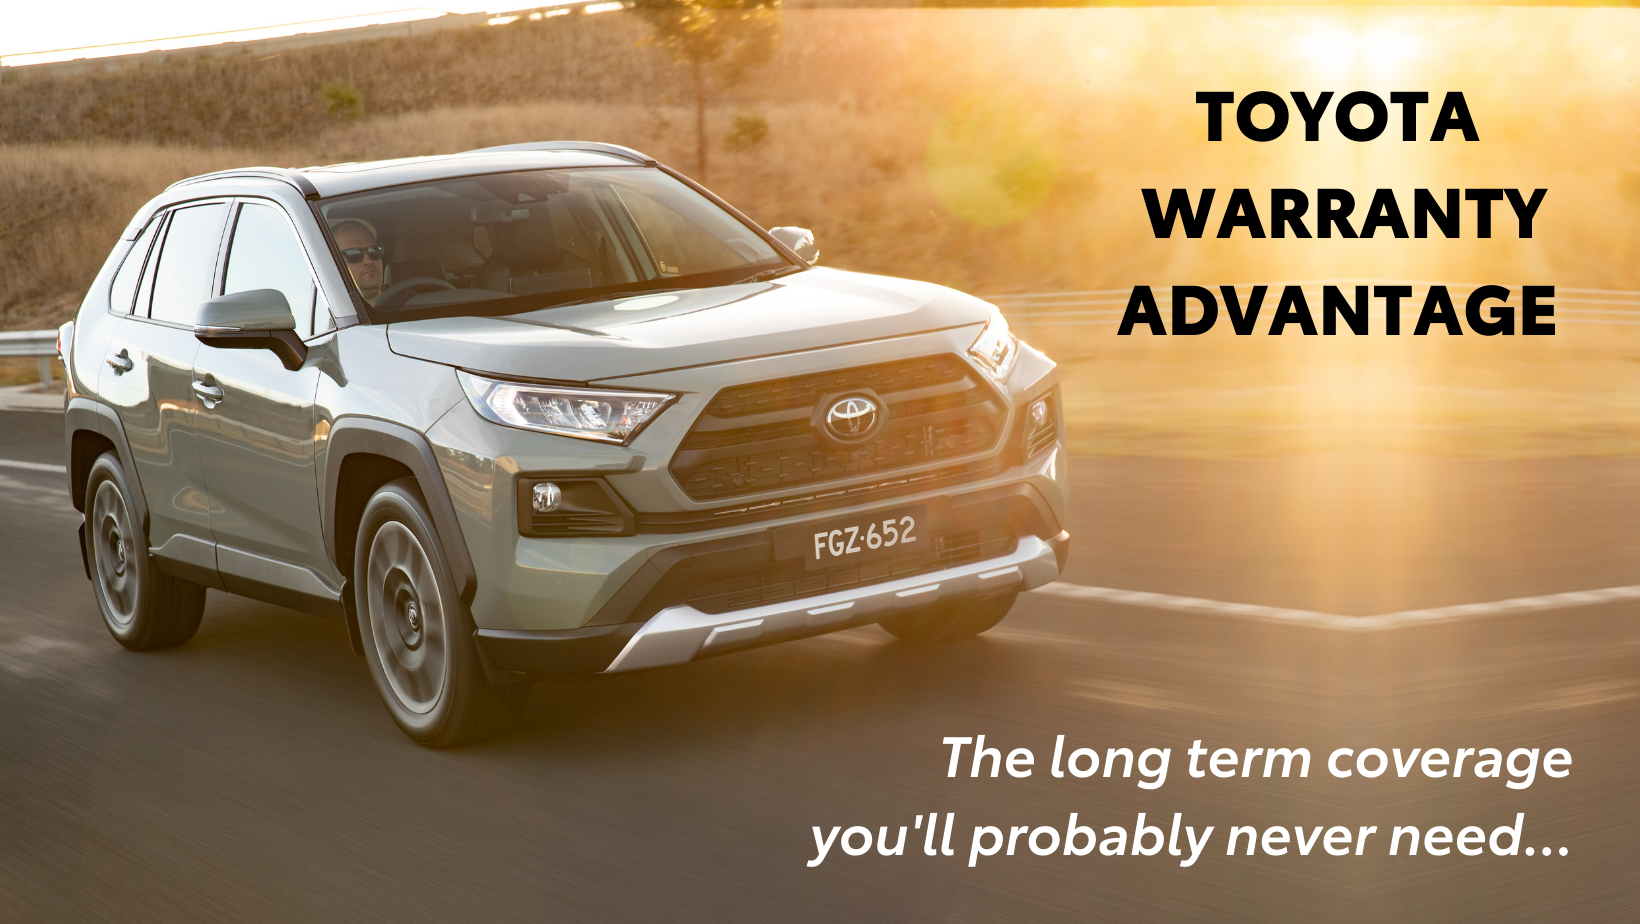 Toyota Warranty Advantage - 5 year unlimited kilometre warranty available with all new Toyota models! Talk to us today at Sunshine Toyota on the Sunshine Coast!